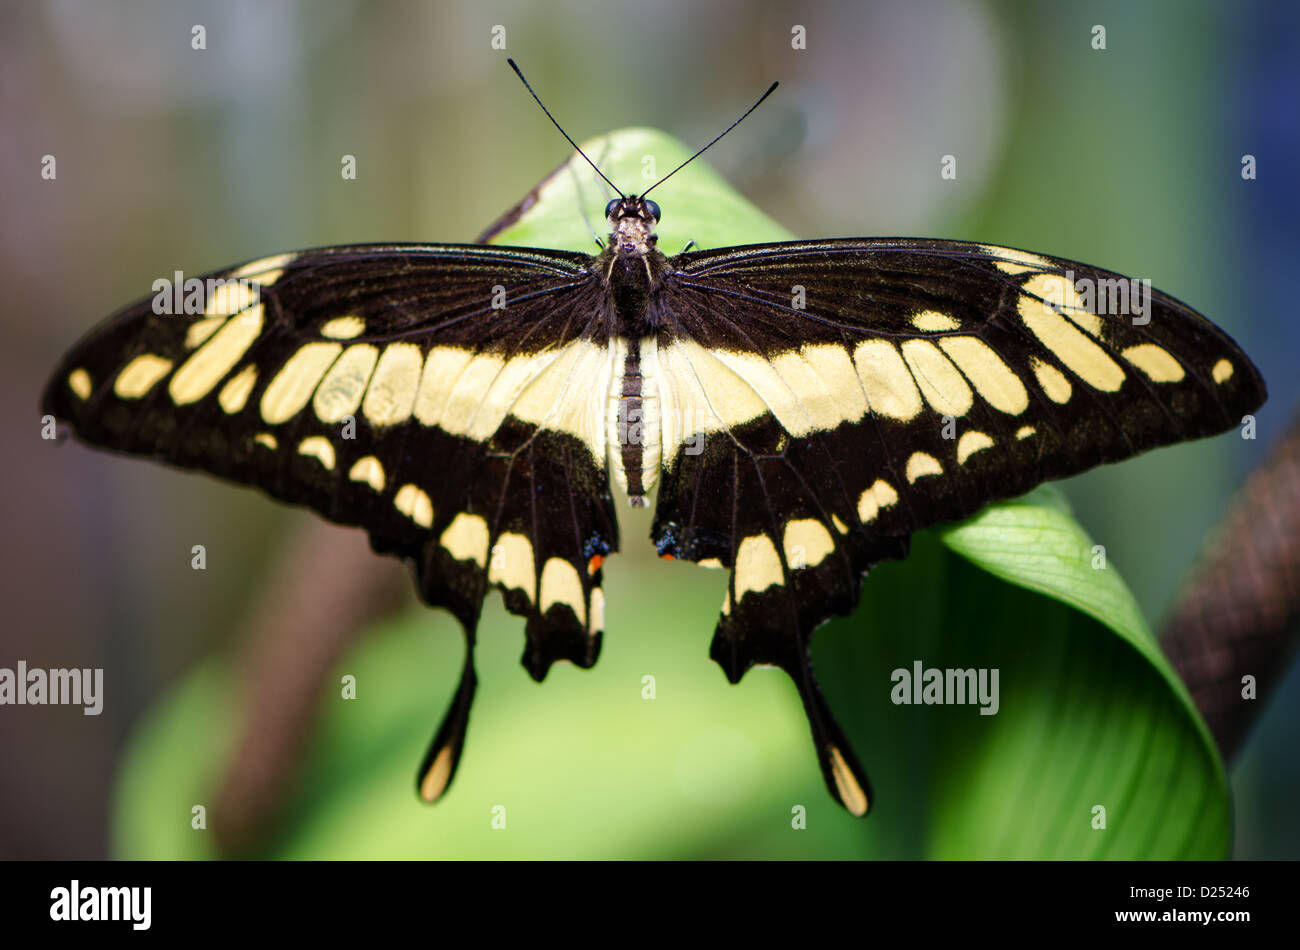 back view of a Swallowtail butterfly on a leaf - Stock Image